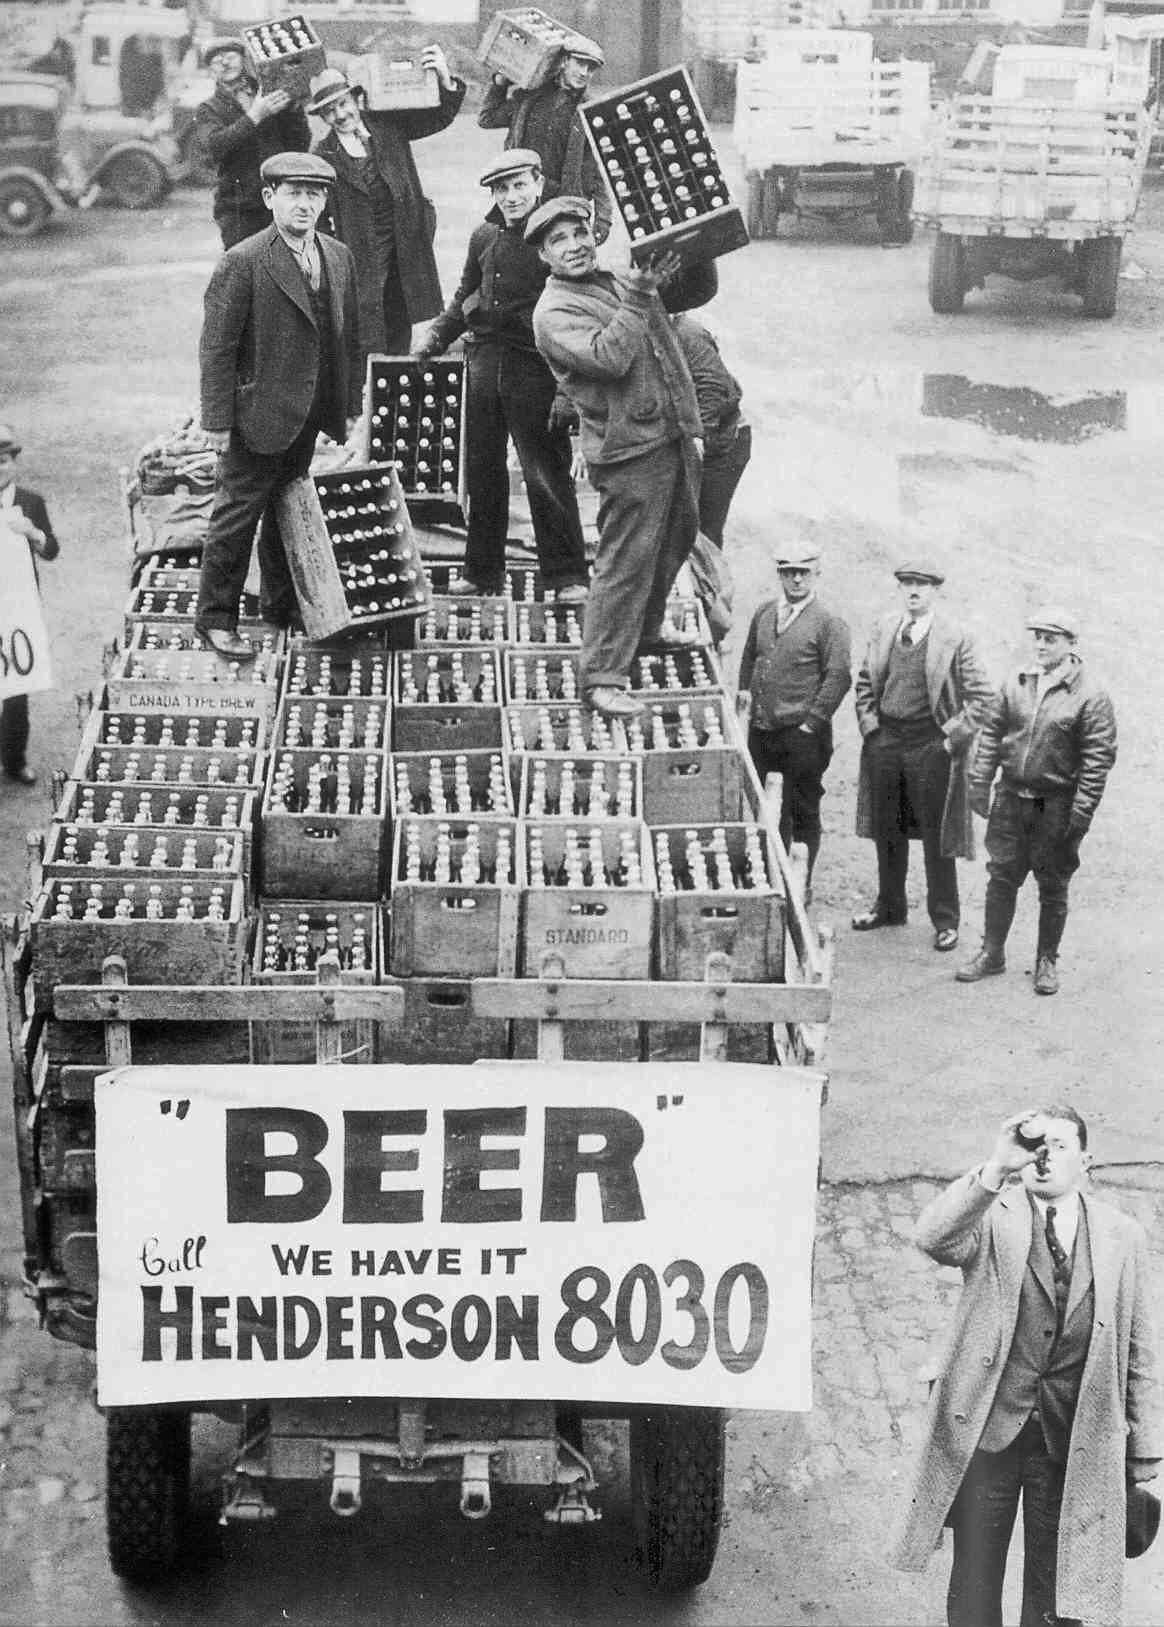 The End of Prohibition in Cleveland Ohio 1933